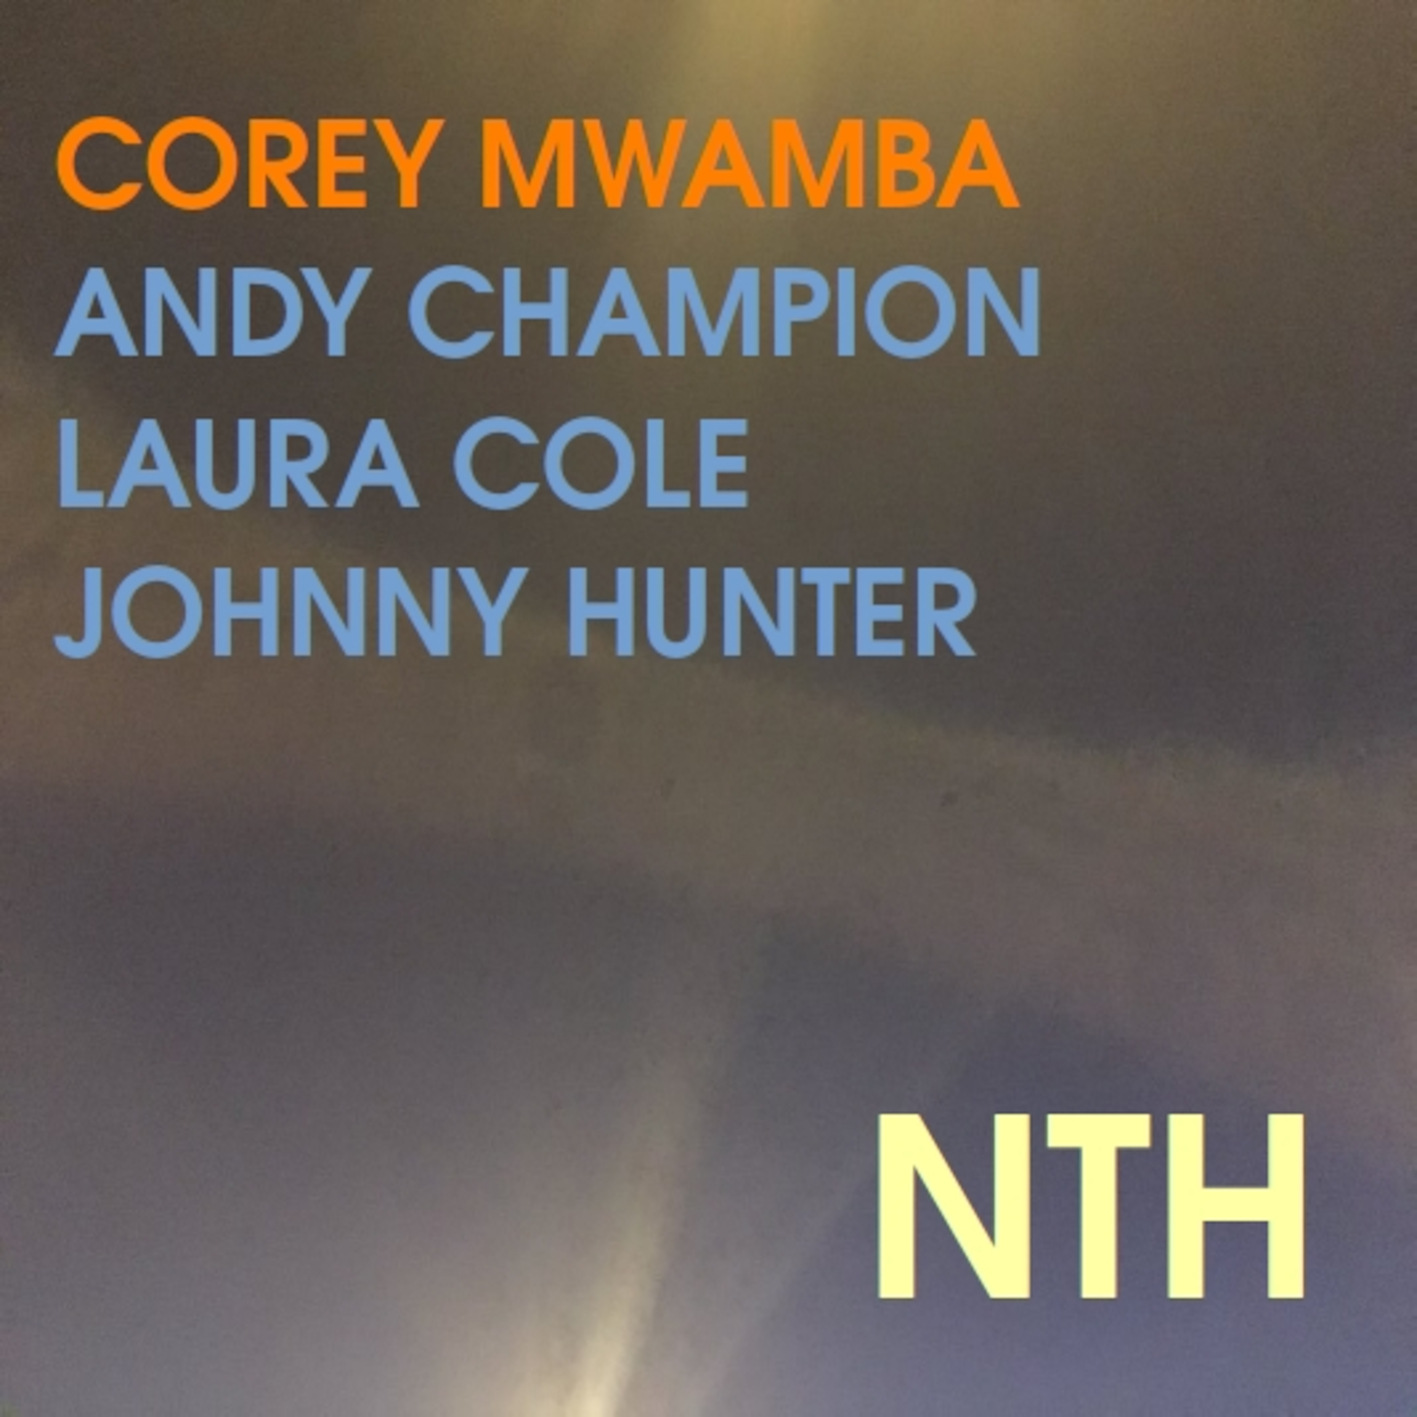 Discus Music | Discus Music - 86CD - Corey Mwamba - NTH - CD plus free download